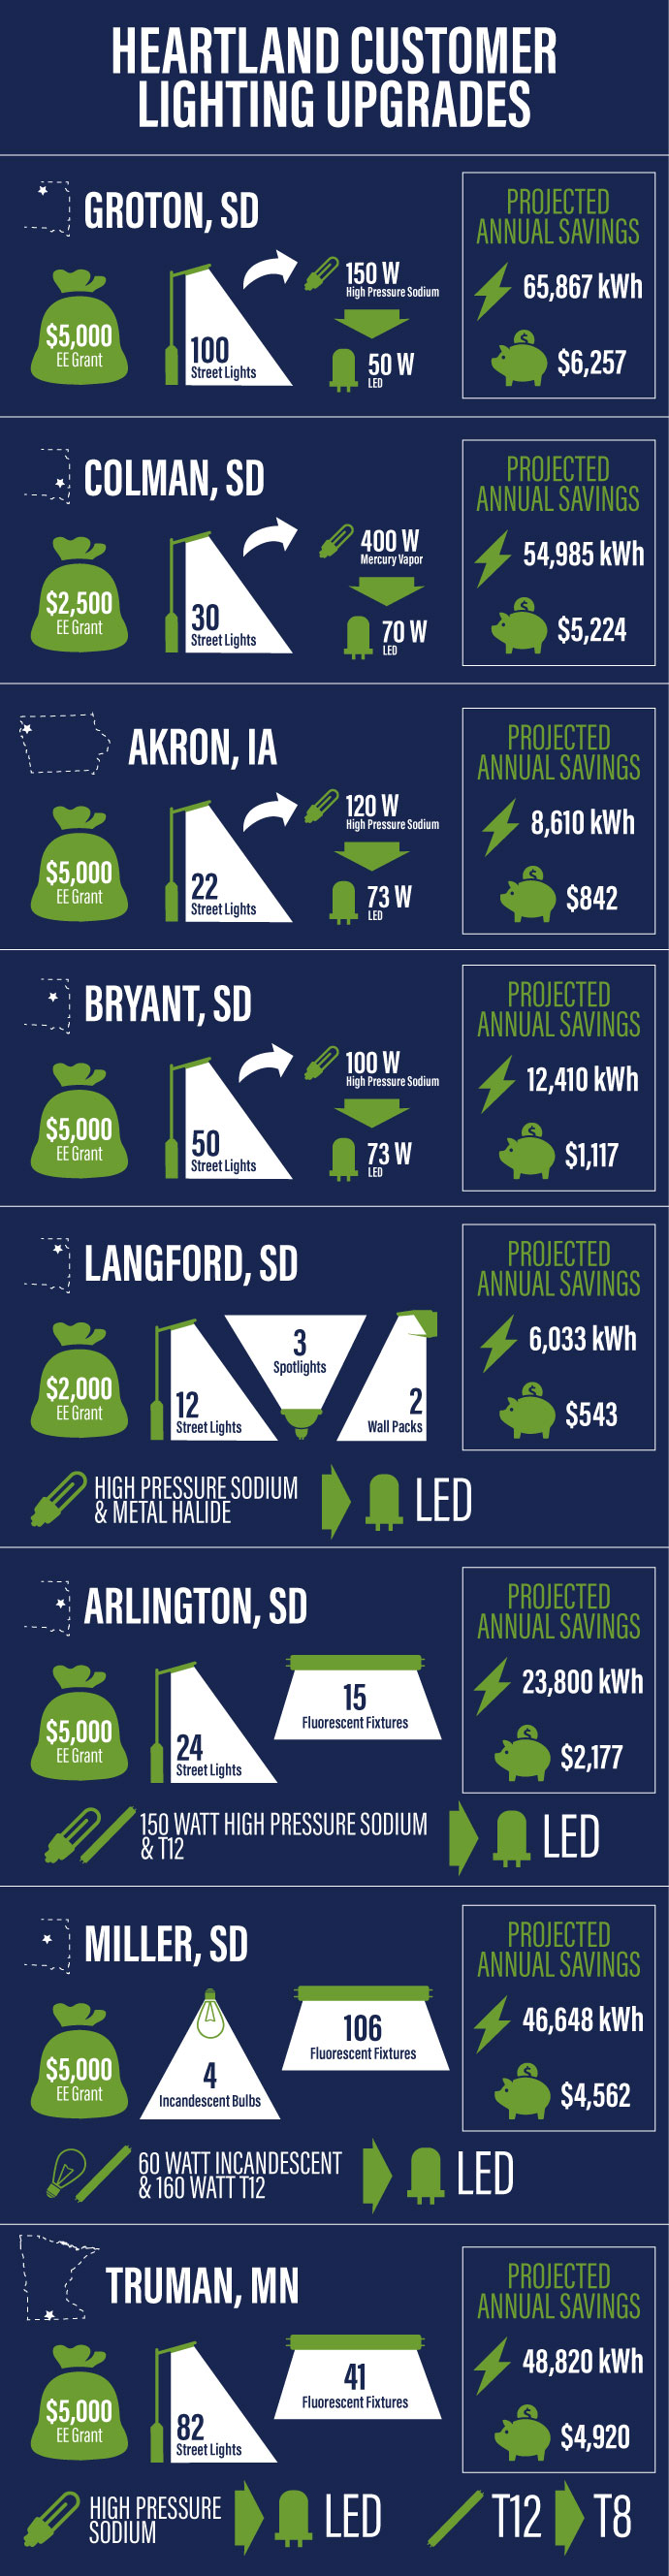 LED-infographic-2016